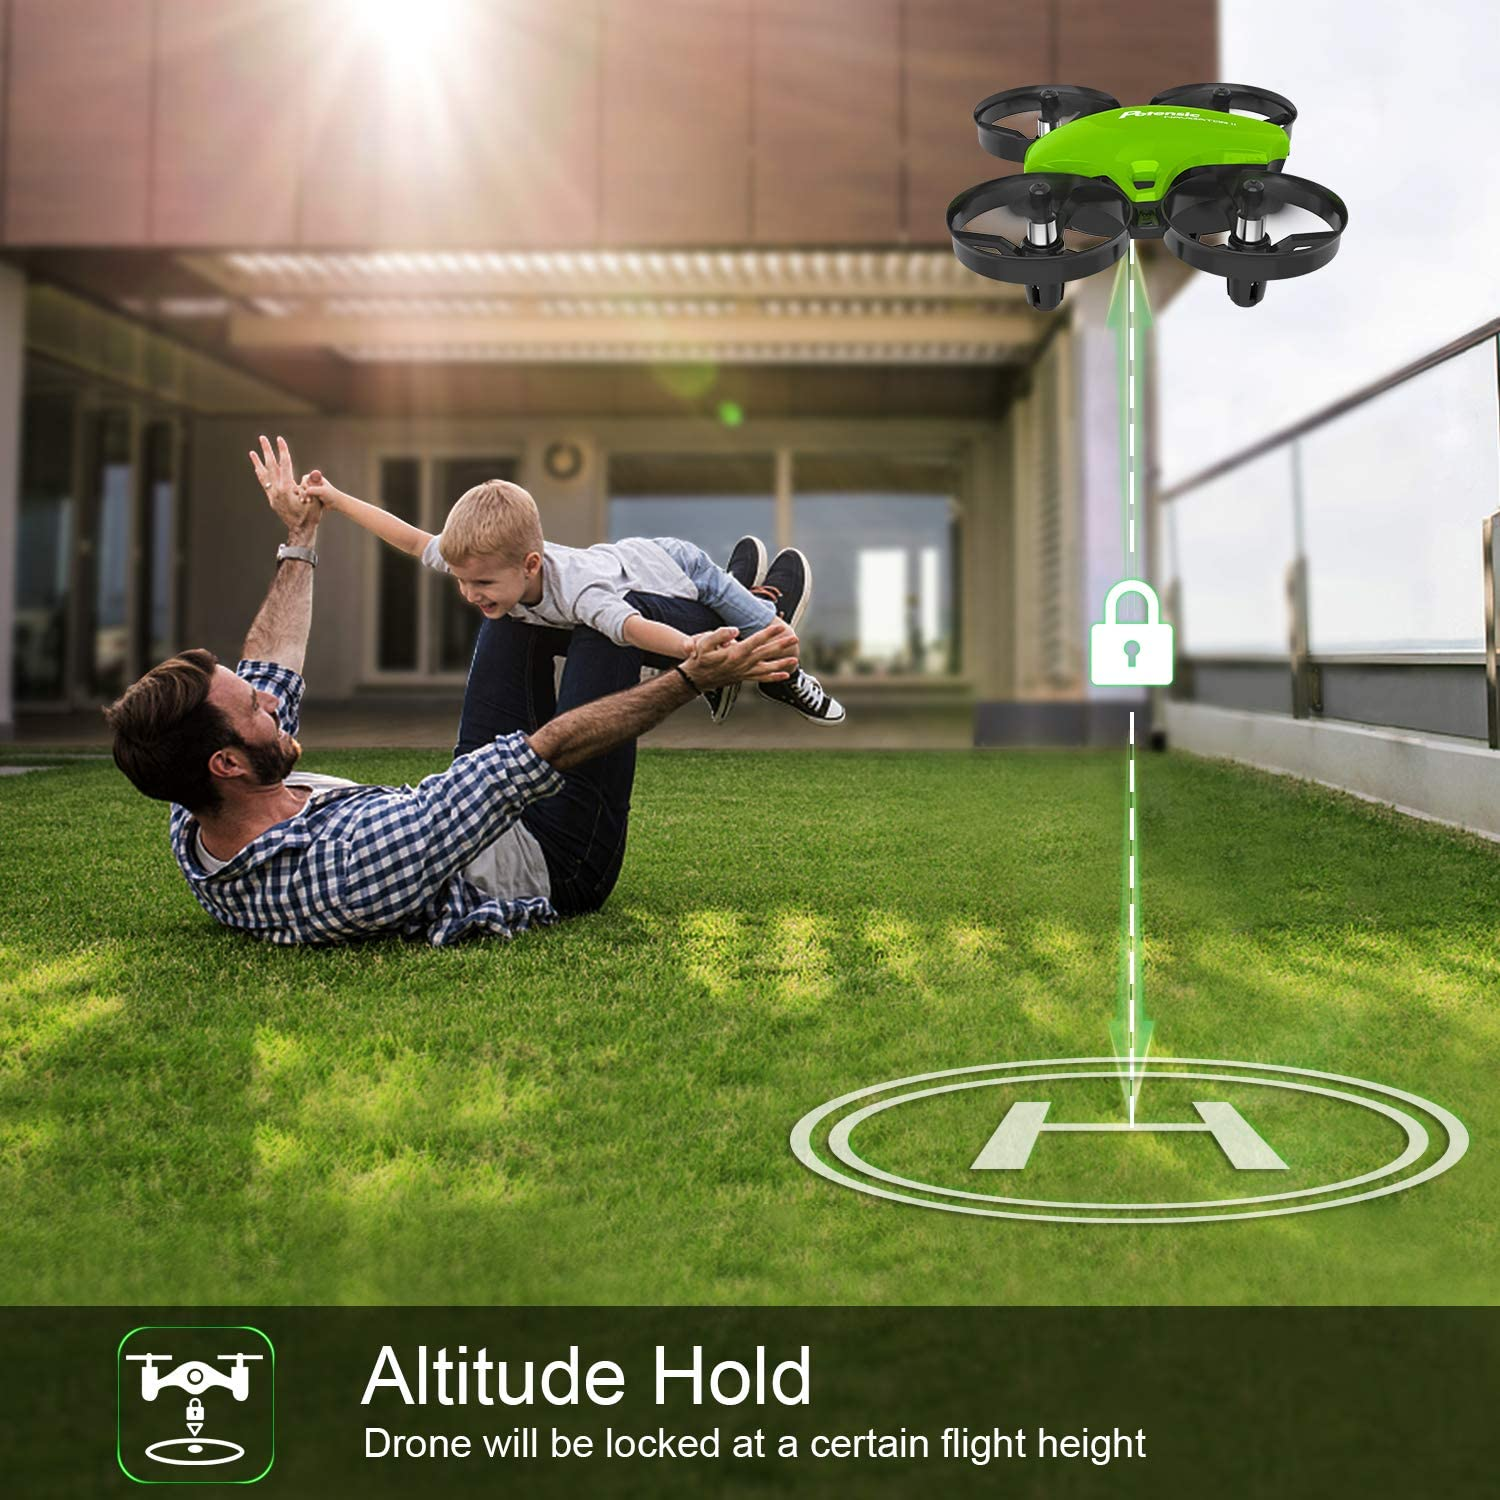 Potensic Mini Drone A20 is the best rc nano quadcopter for kids & beginners as per my review